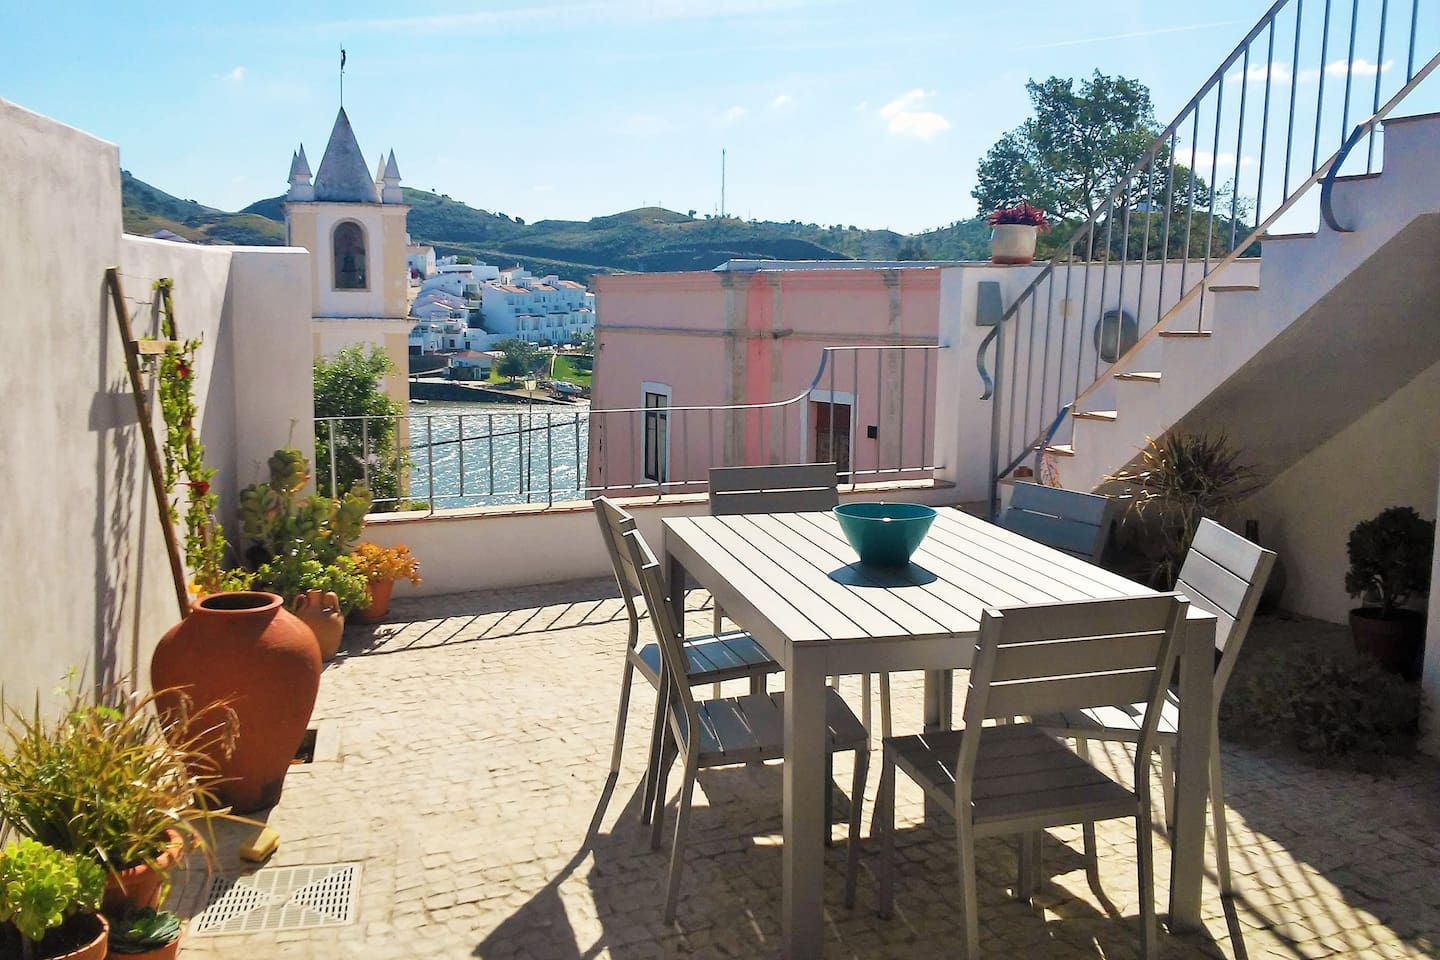 Enjoy dining out in the courtyard with views done to the church and river.